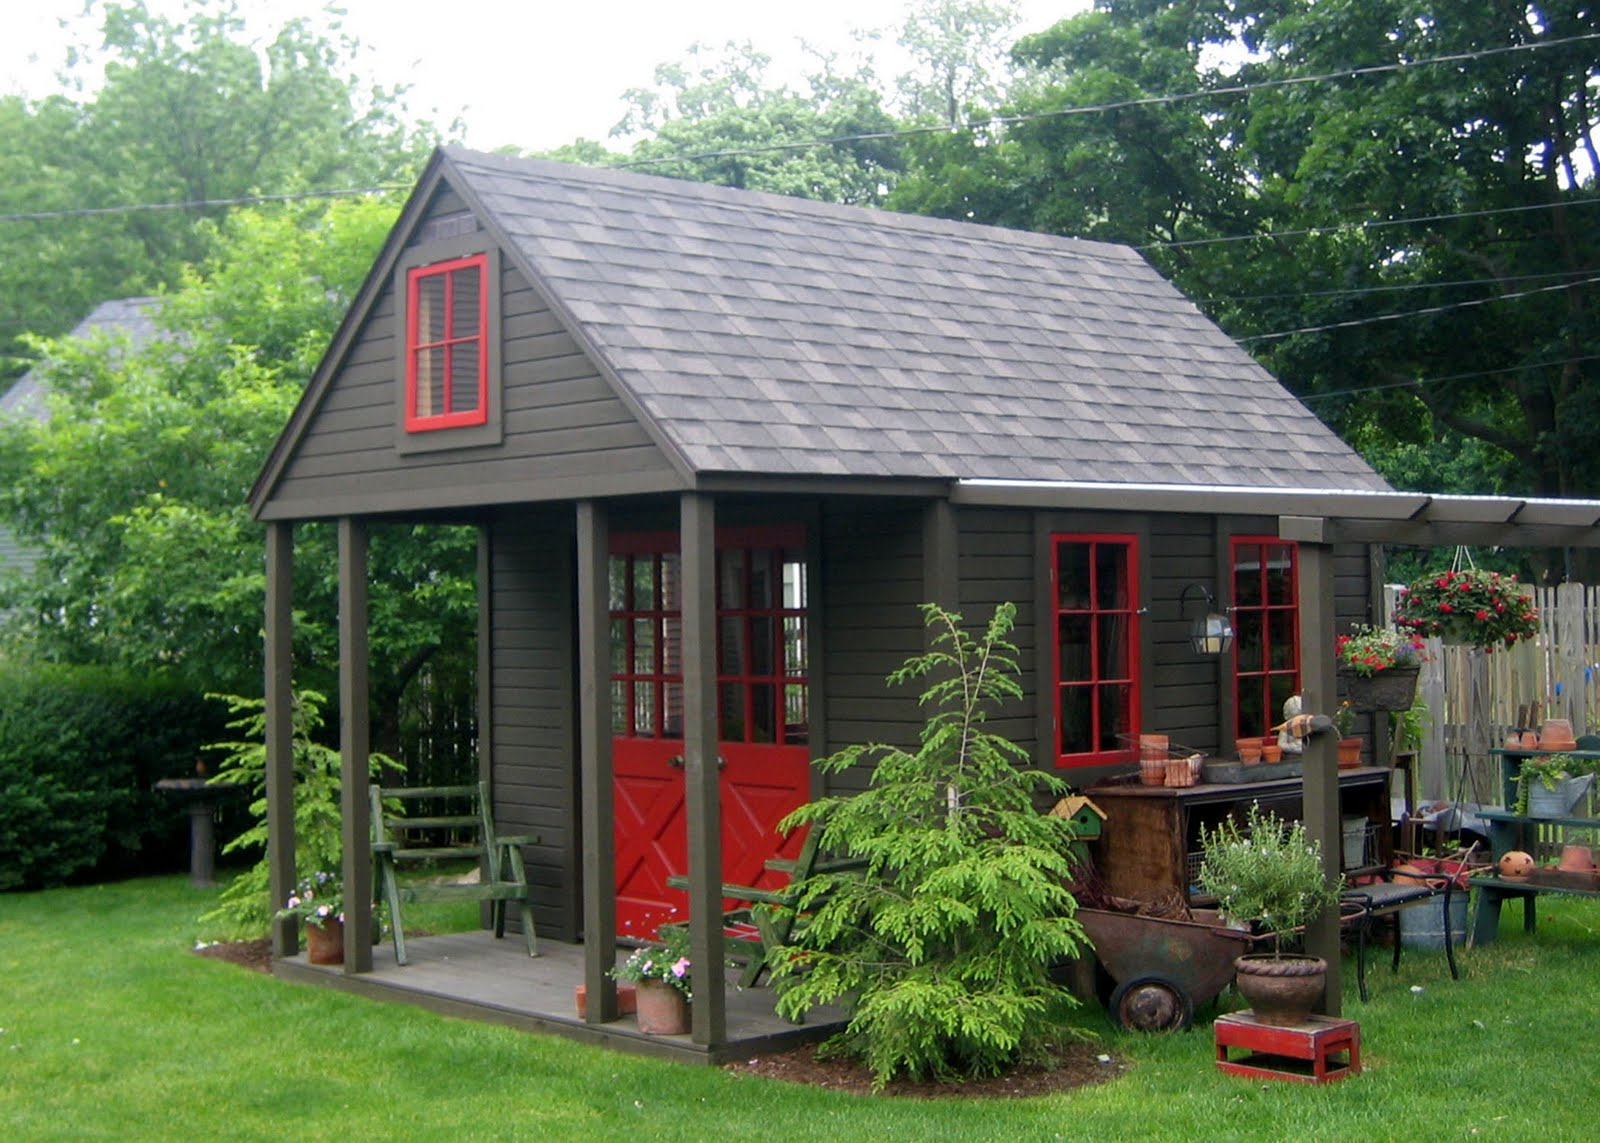 Pictures Of Backyard Garden Sheds :  Home and Garden Club GARDEN SHEDS, PORCHES, BACKYARD RETREATS